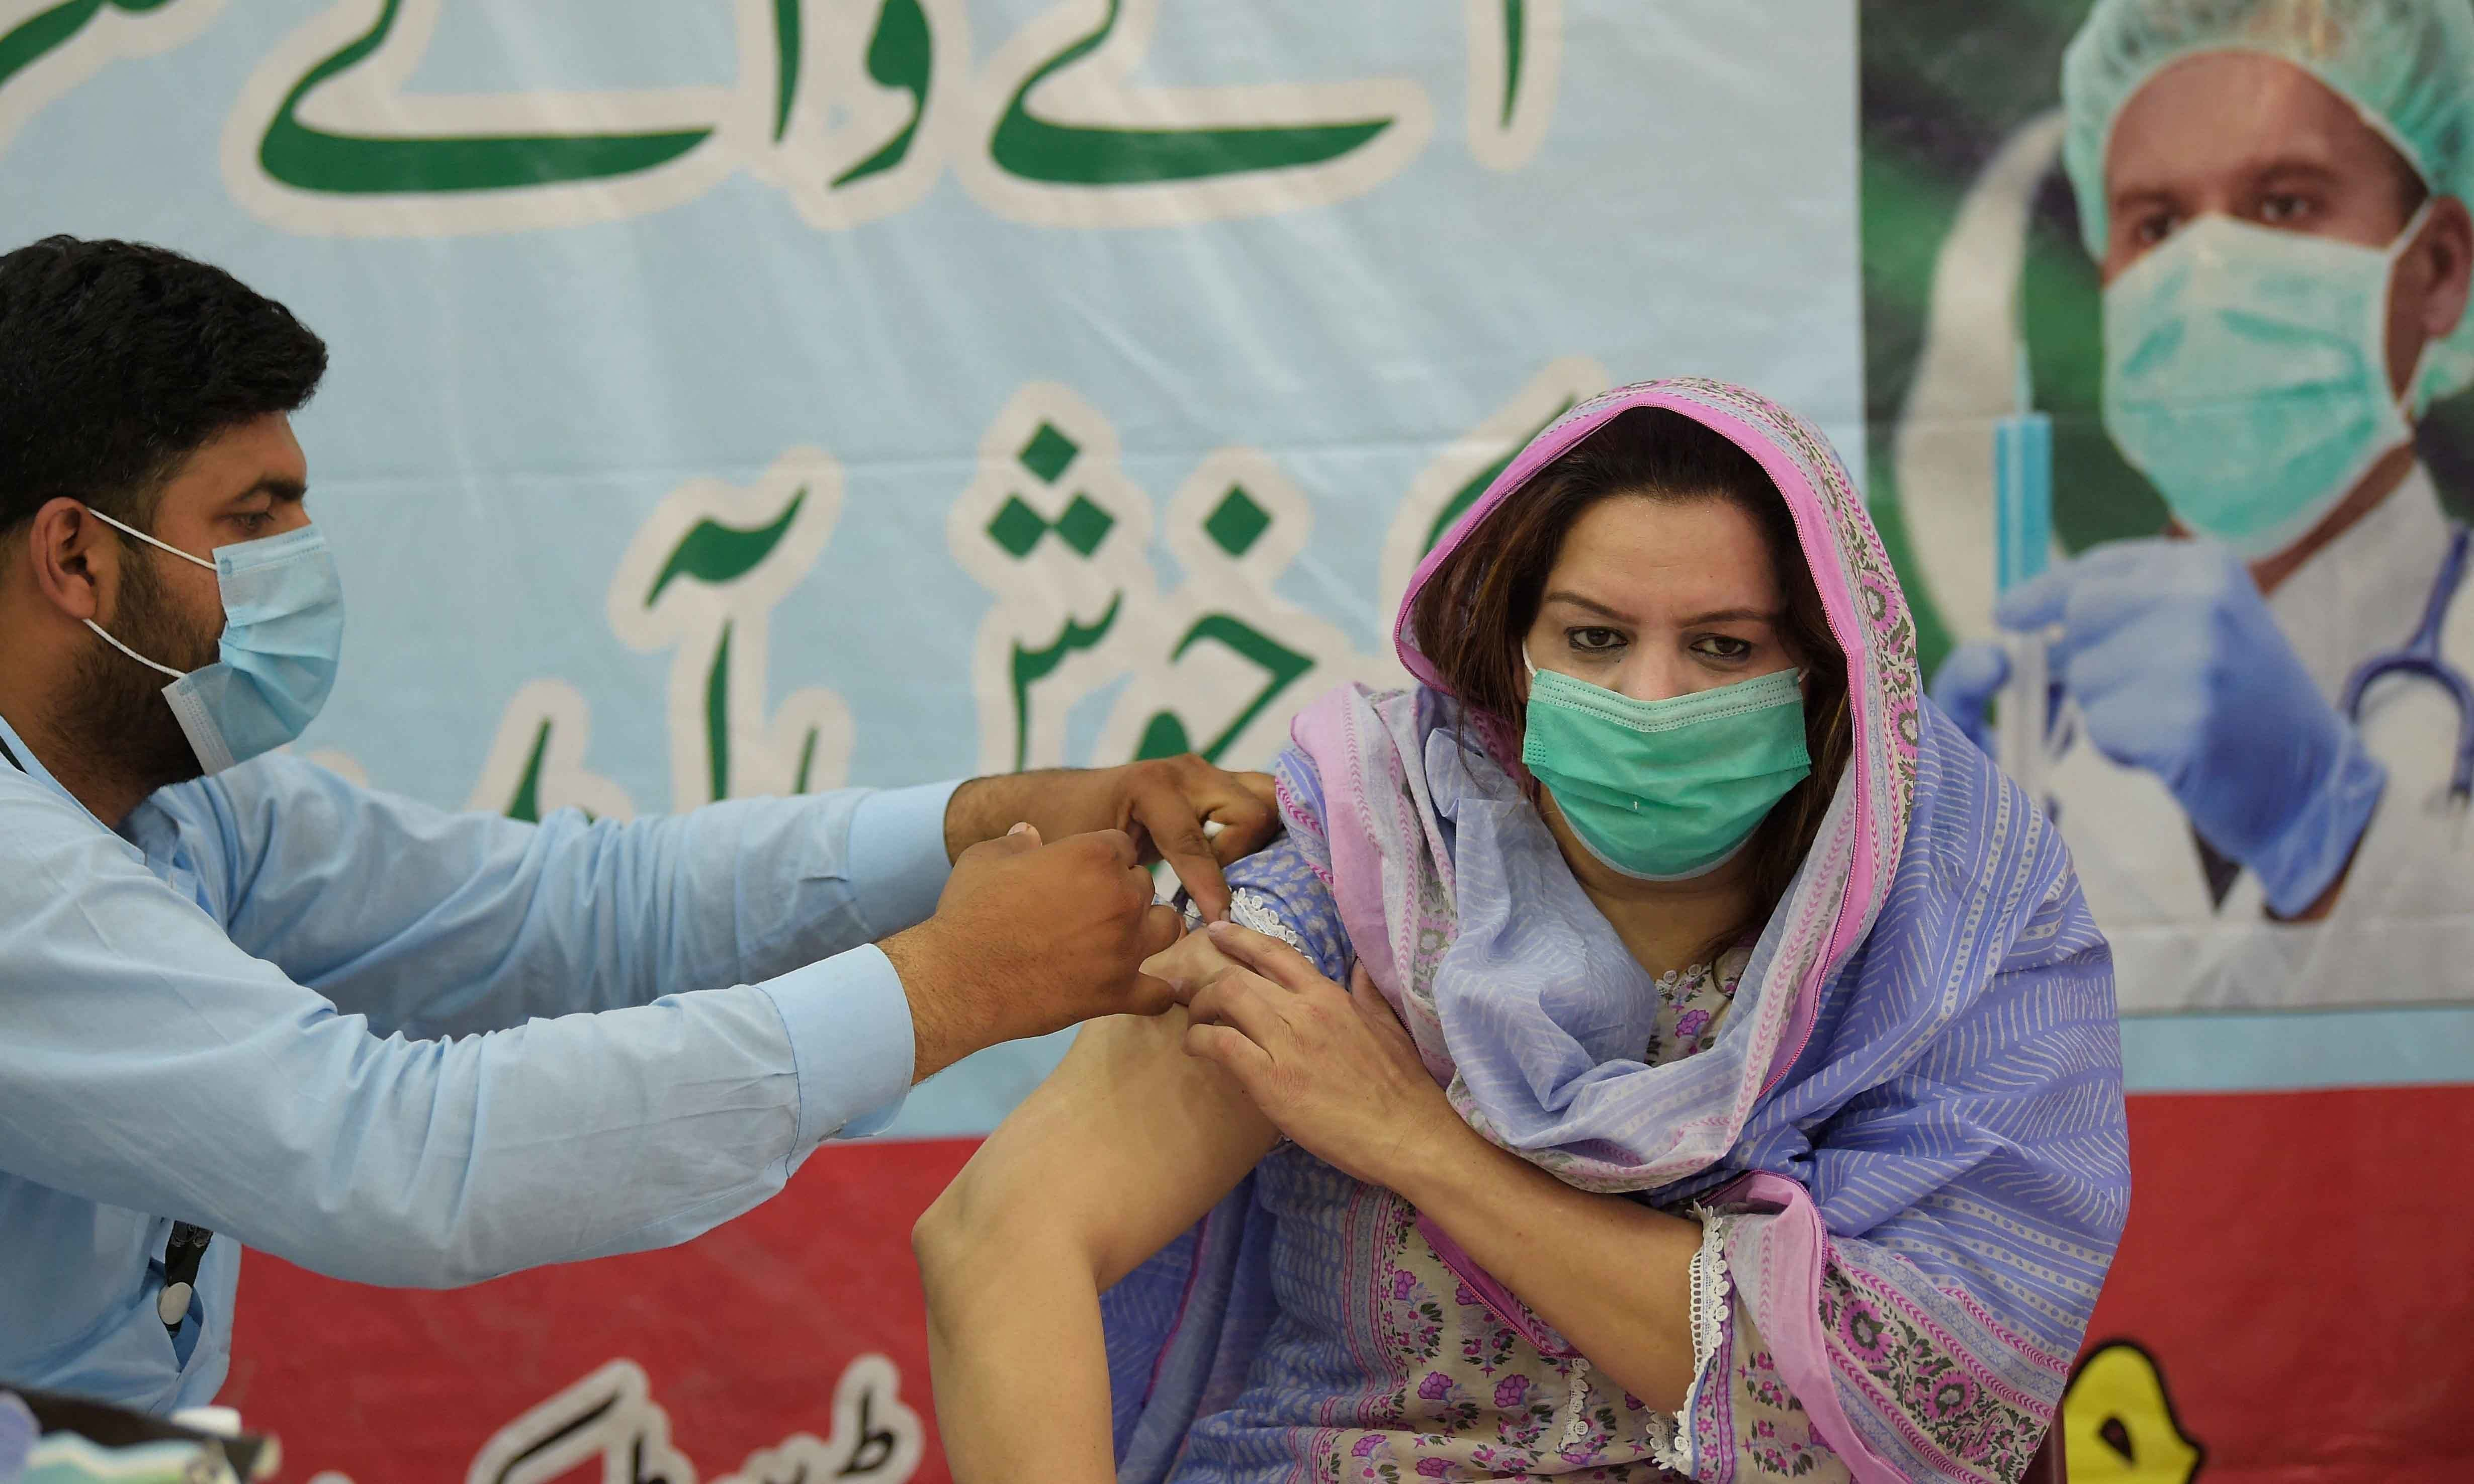 A health worker inoculates a media person with a dose of the Covid-19 coronavirus Sinovac vaccine at a vaccination centre in Rawalpindi on May 25. — AFP/File